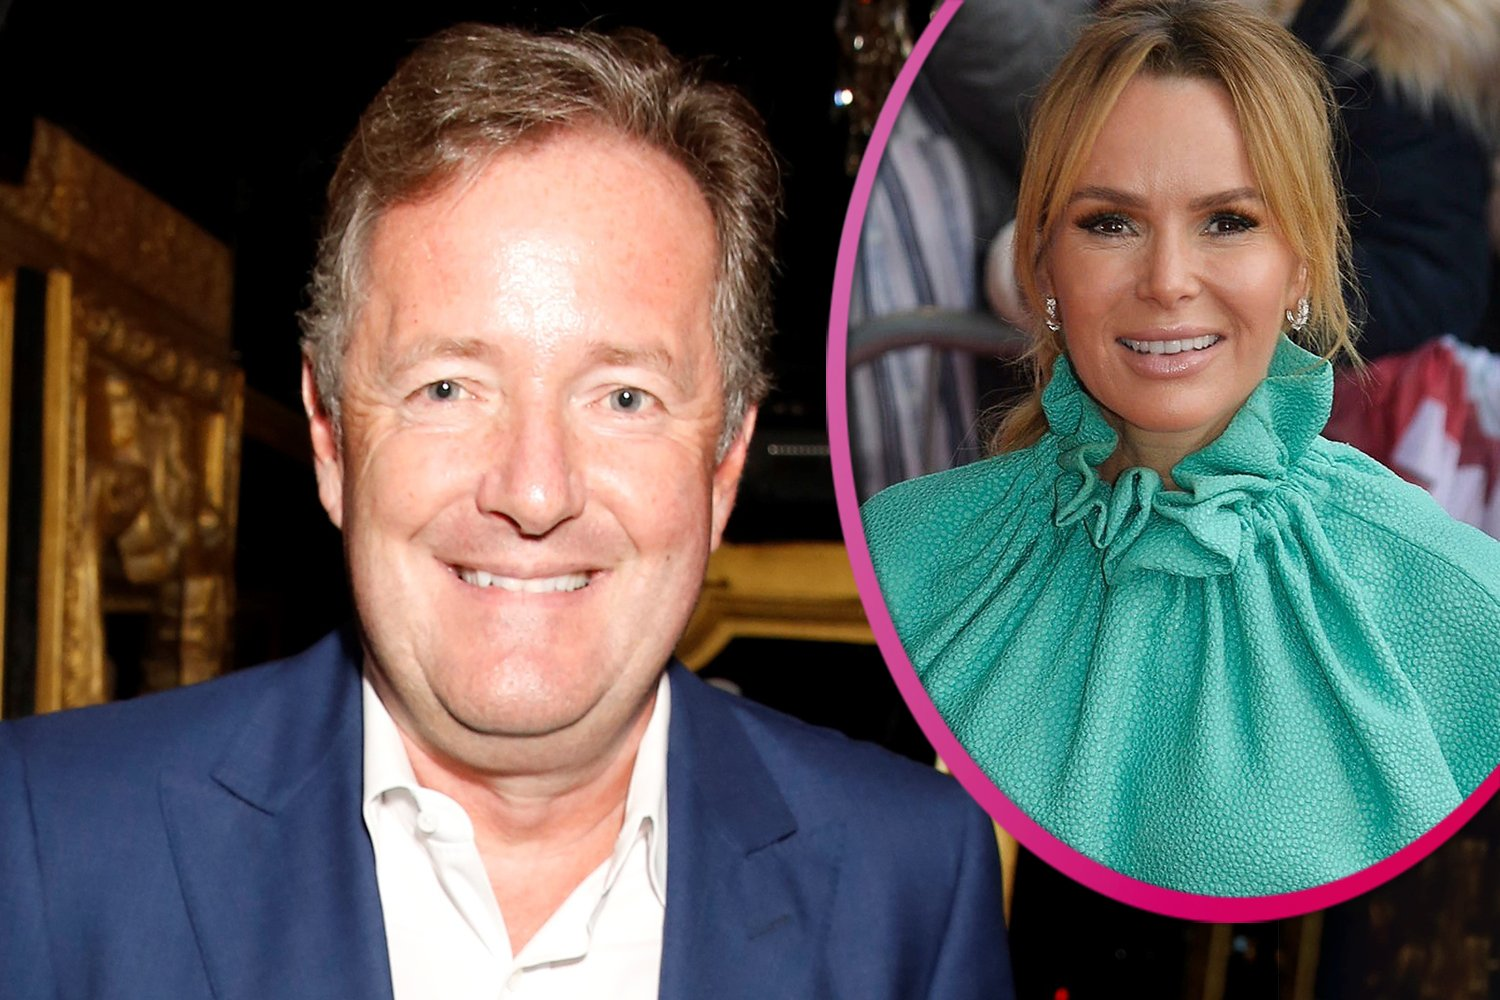 Piers Morgan and Amanda Holden let loose during boozy lunch on holiday in France